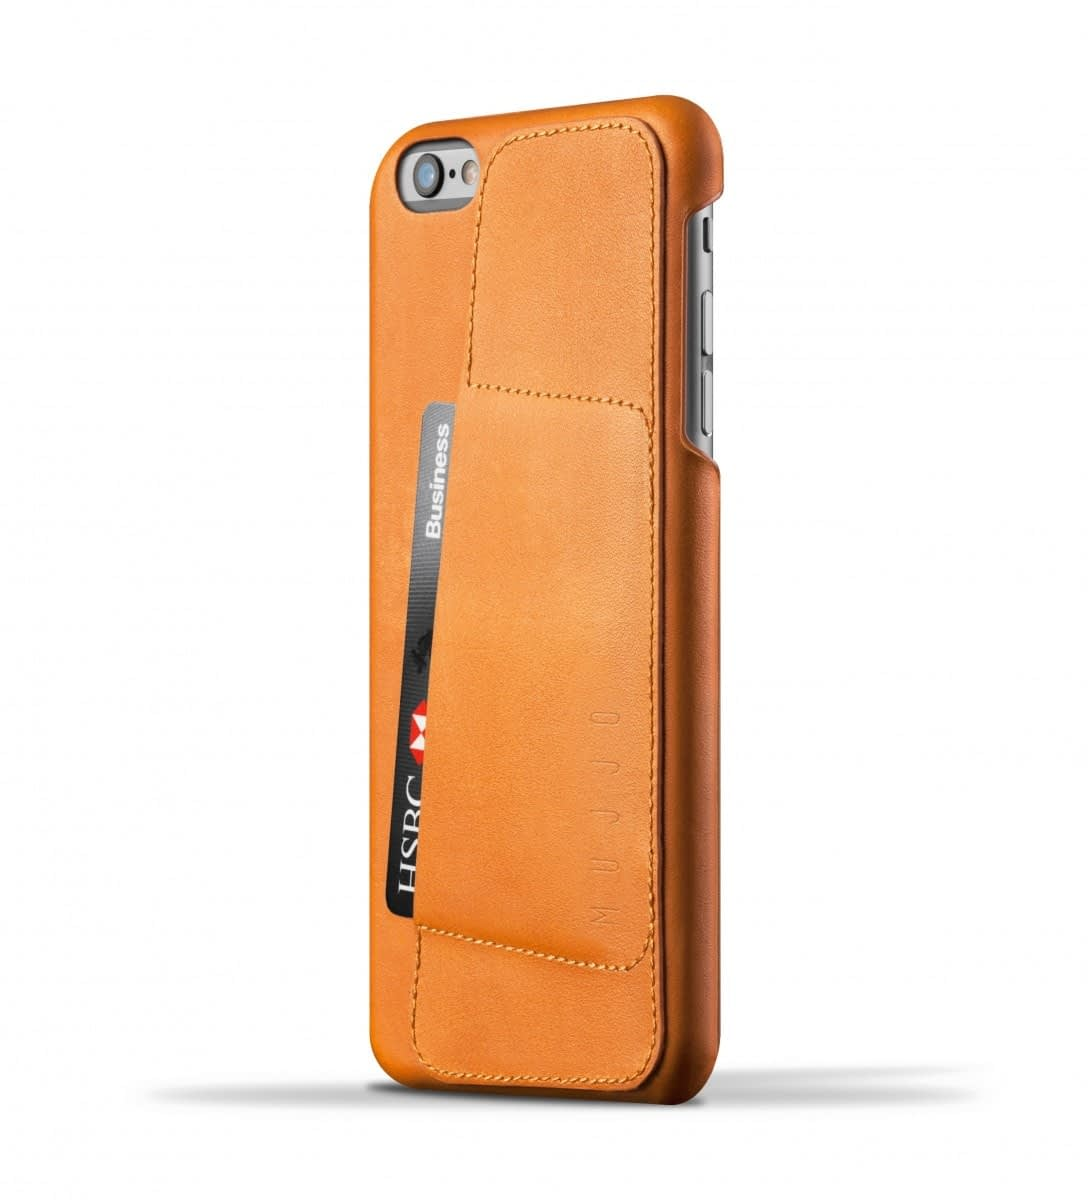 leather wallet case 80 for iphone 6s plus tan 1088x1200